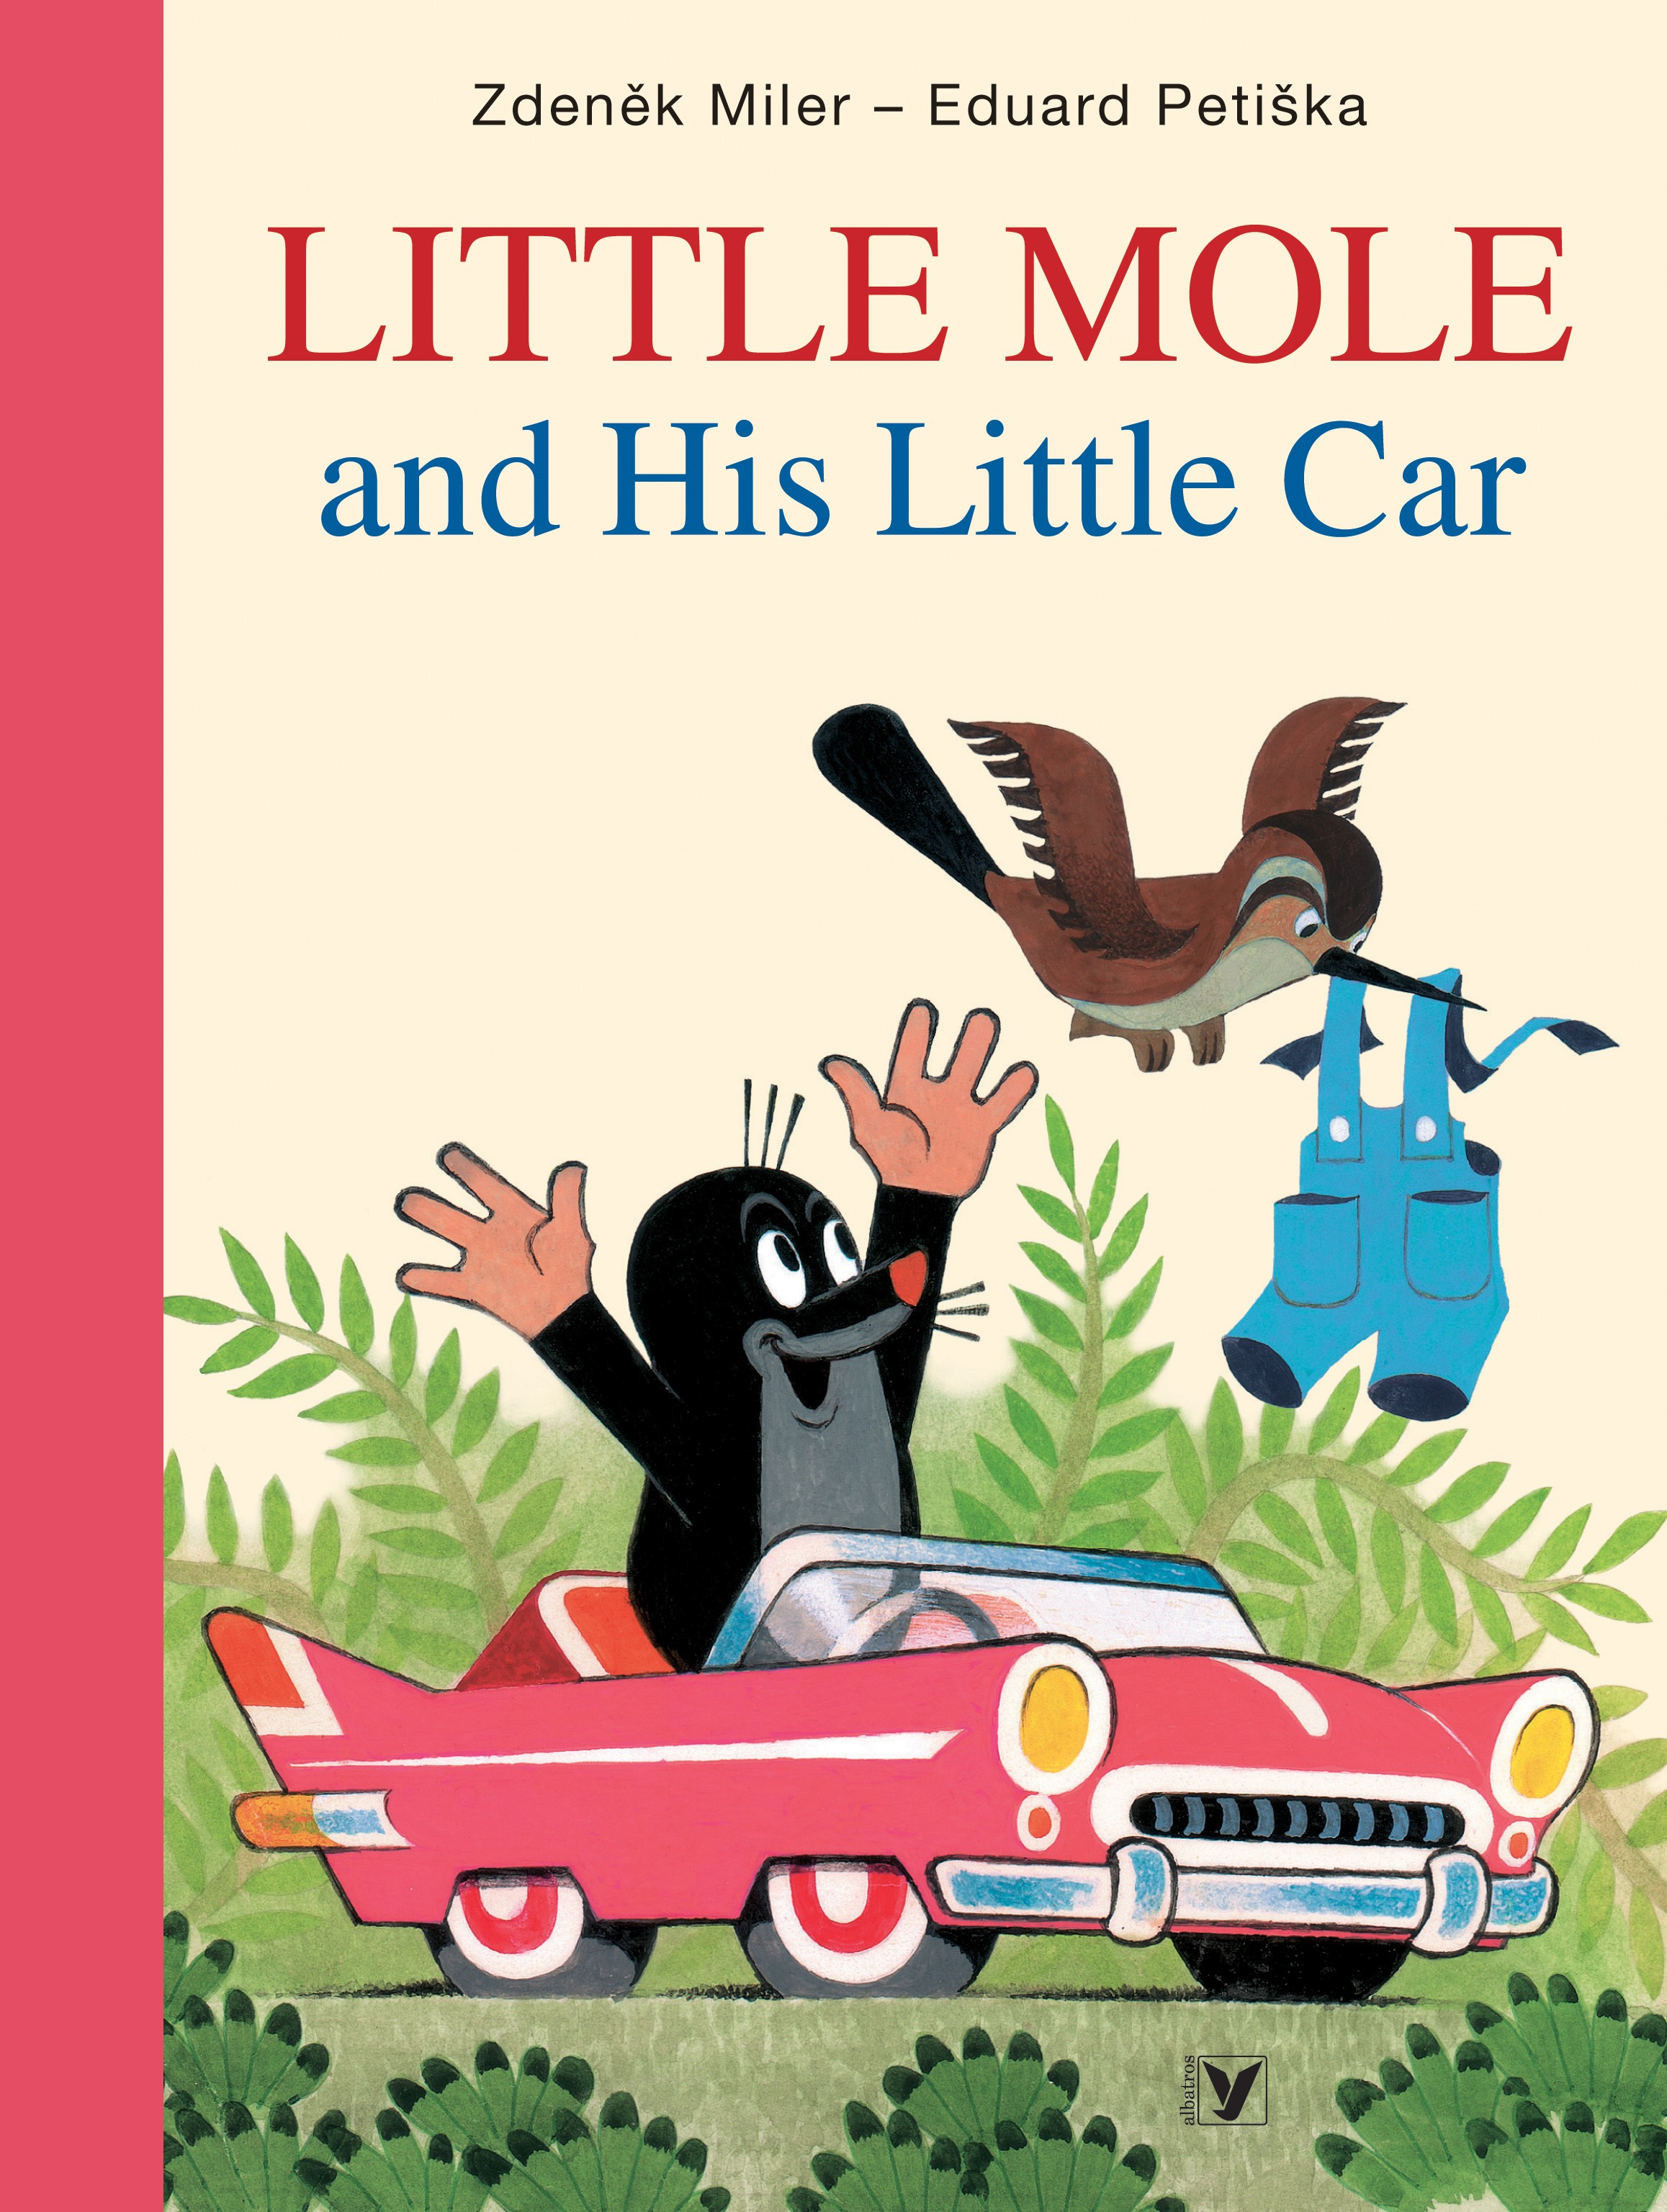 Little Mole and His Little Car | Eduard Petiška, Zdeněk Miler